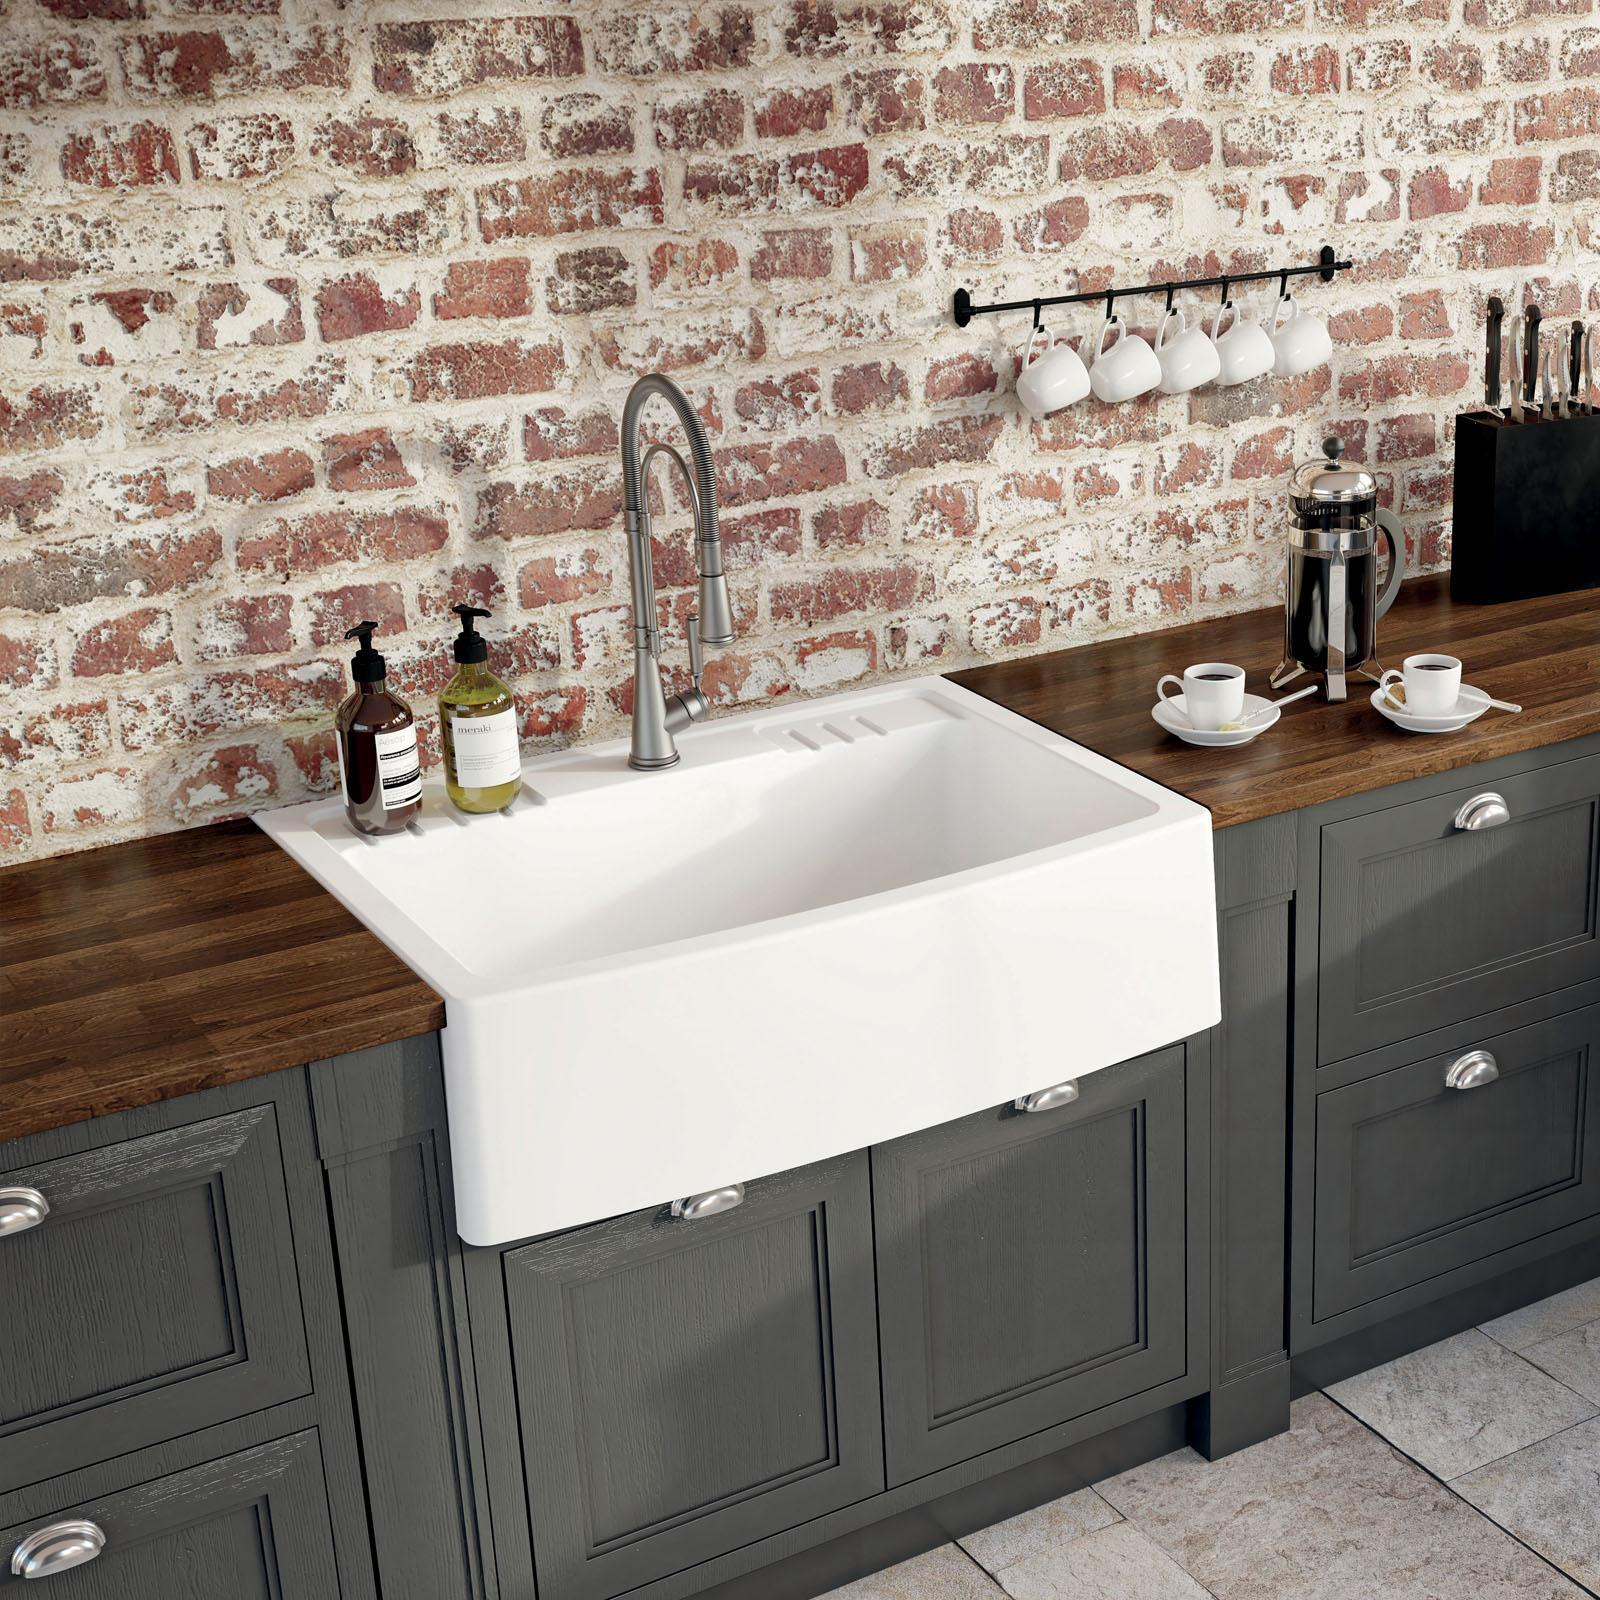 High-quality sink Clotaire IV granit white - one bowl - ambience